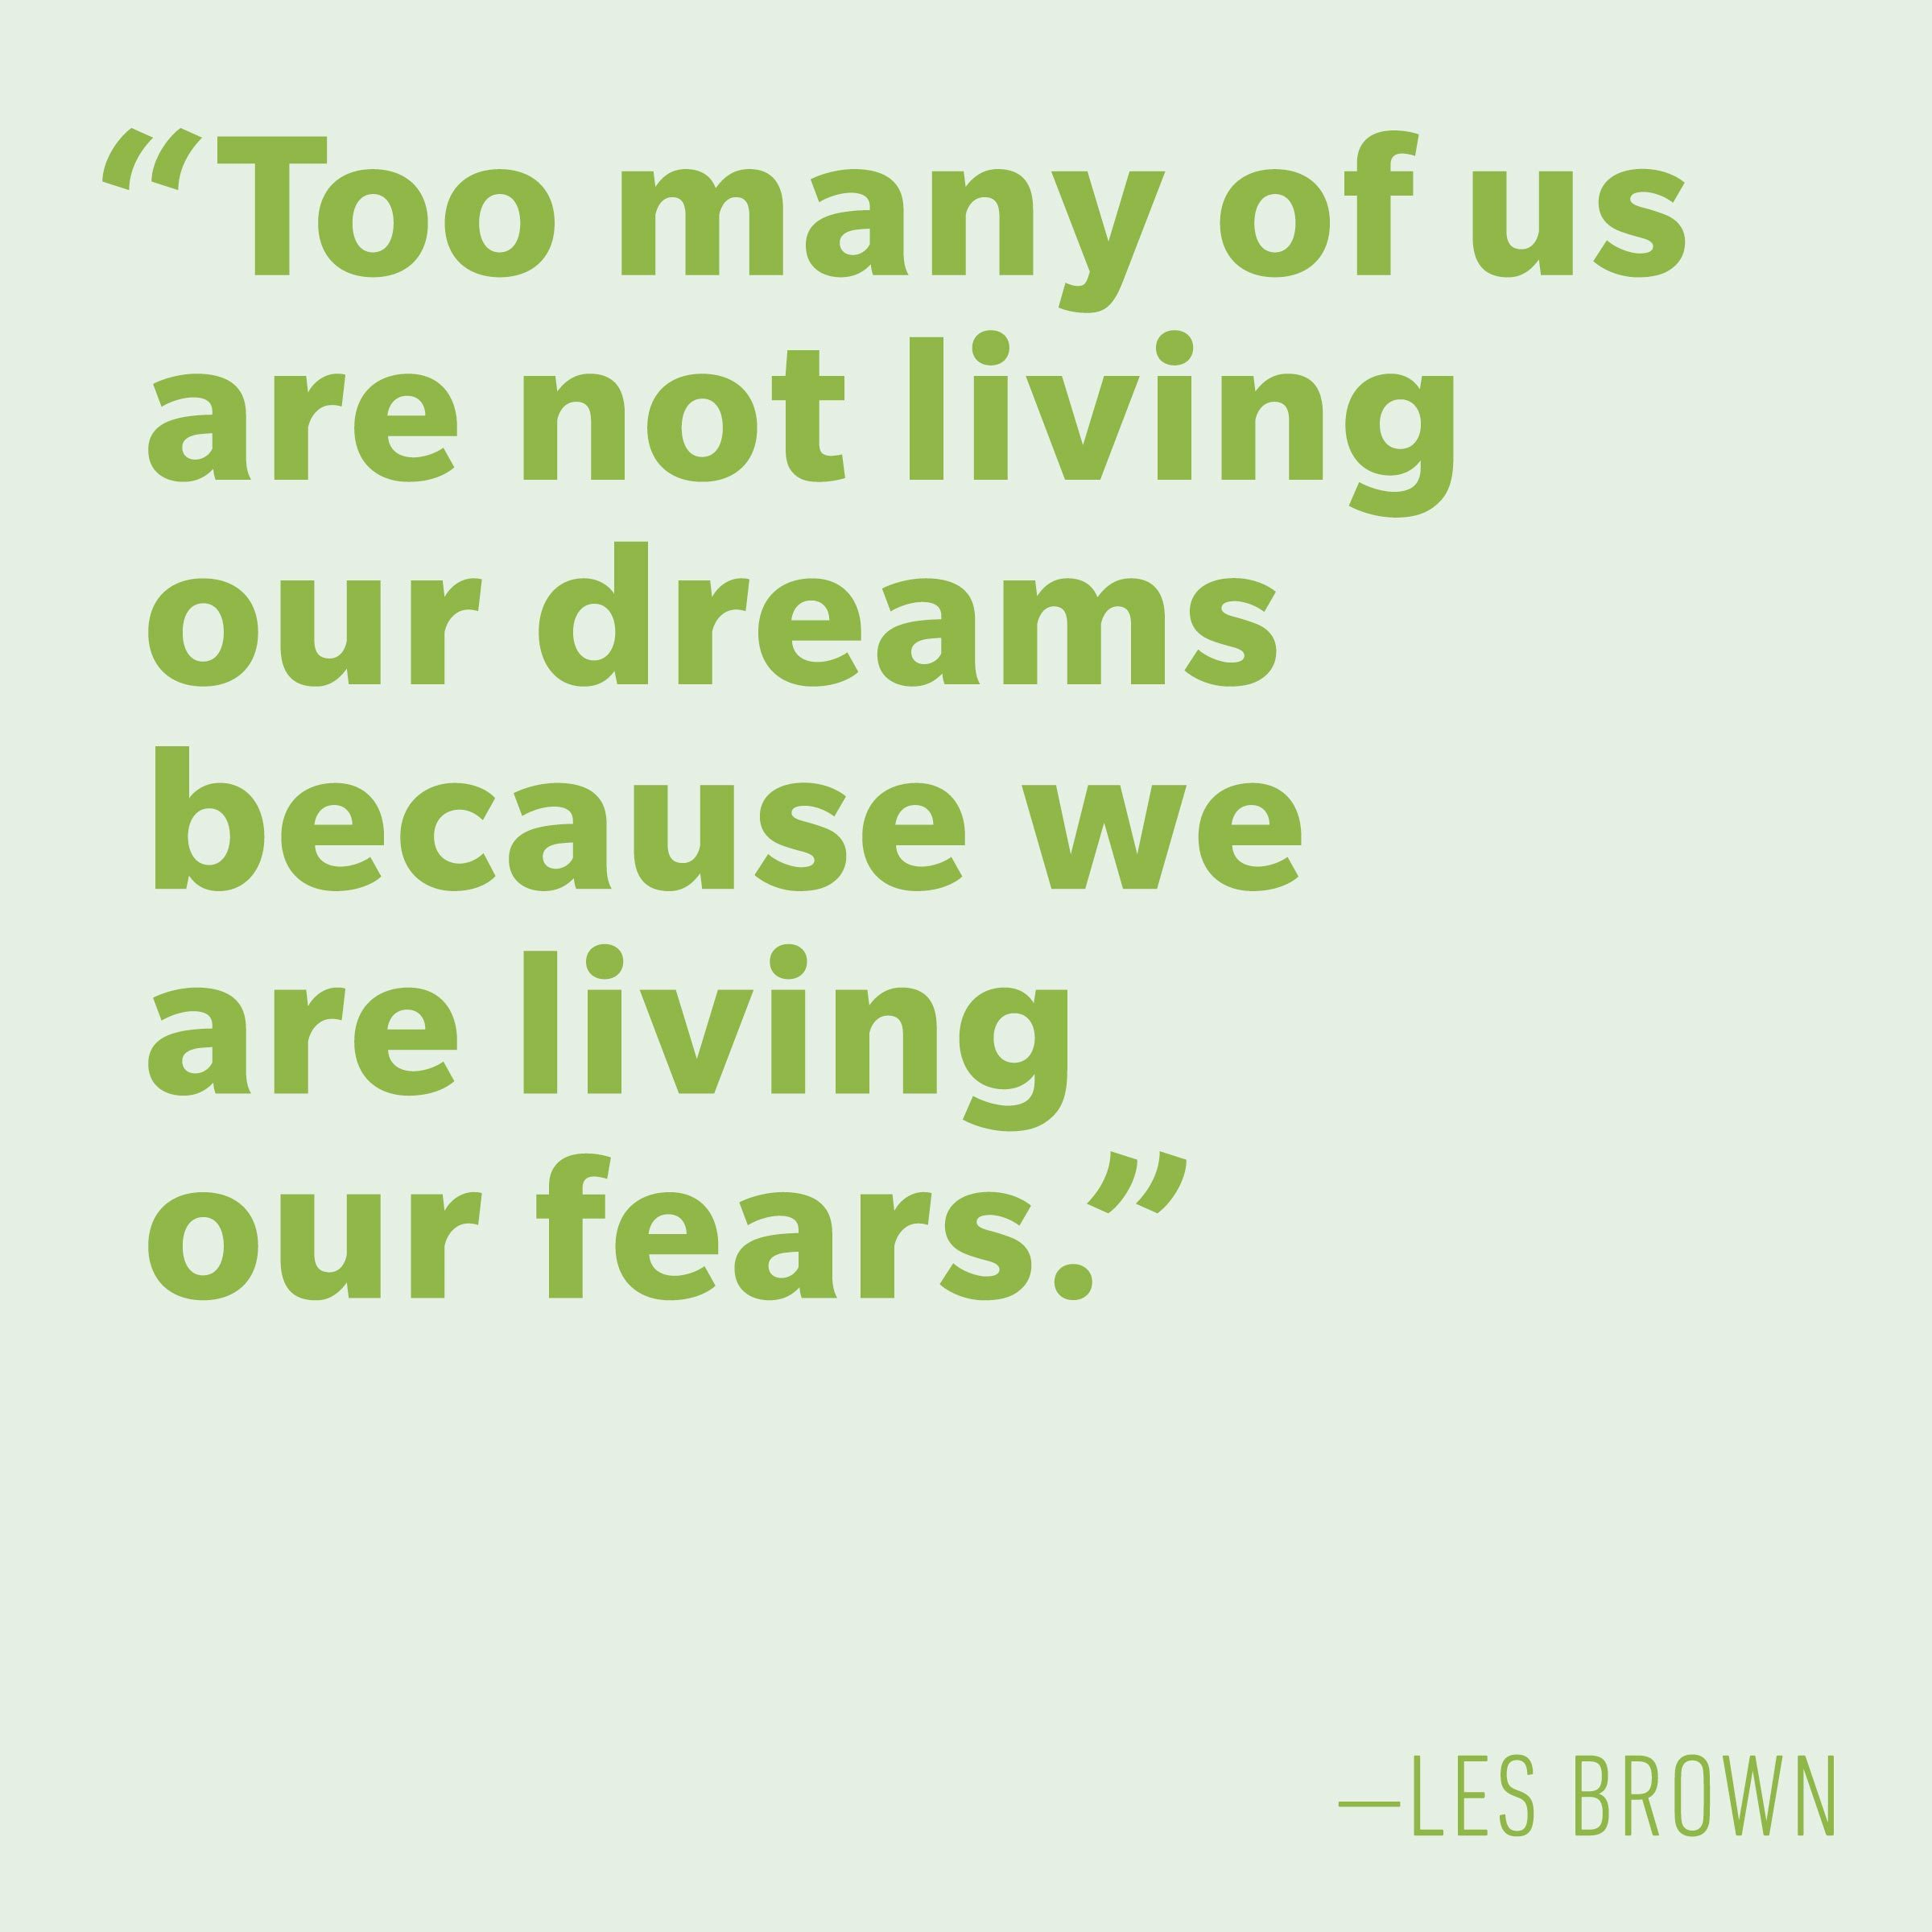 Motivational quotes - Les Brown